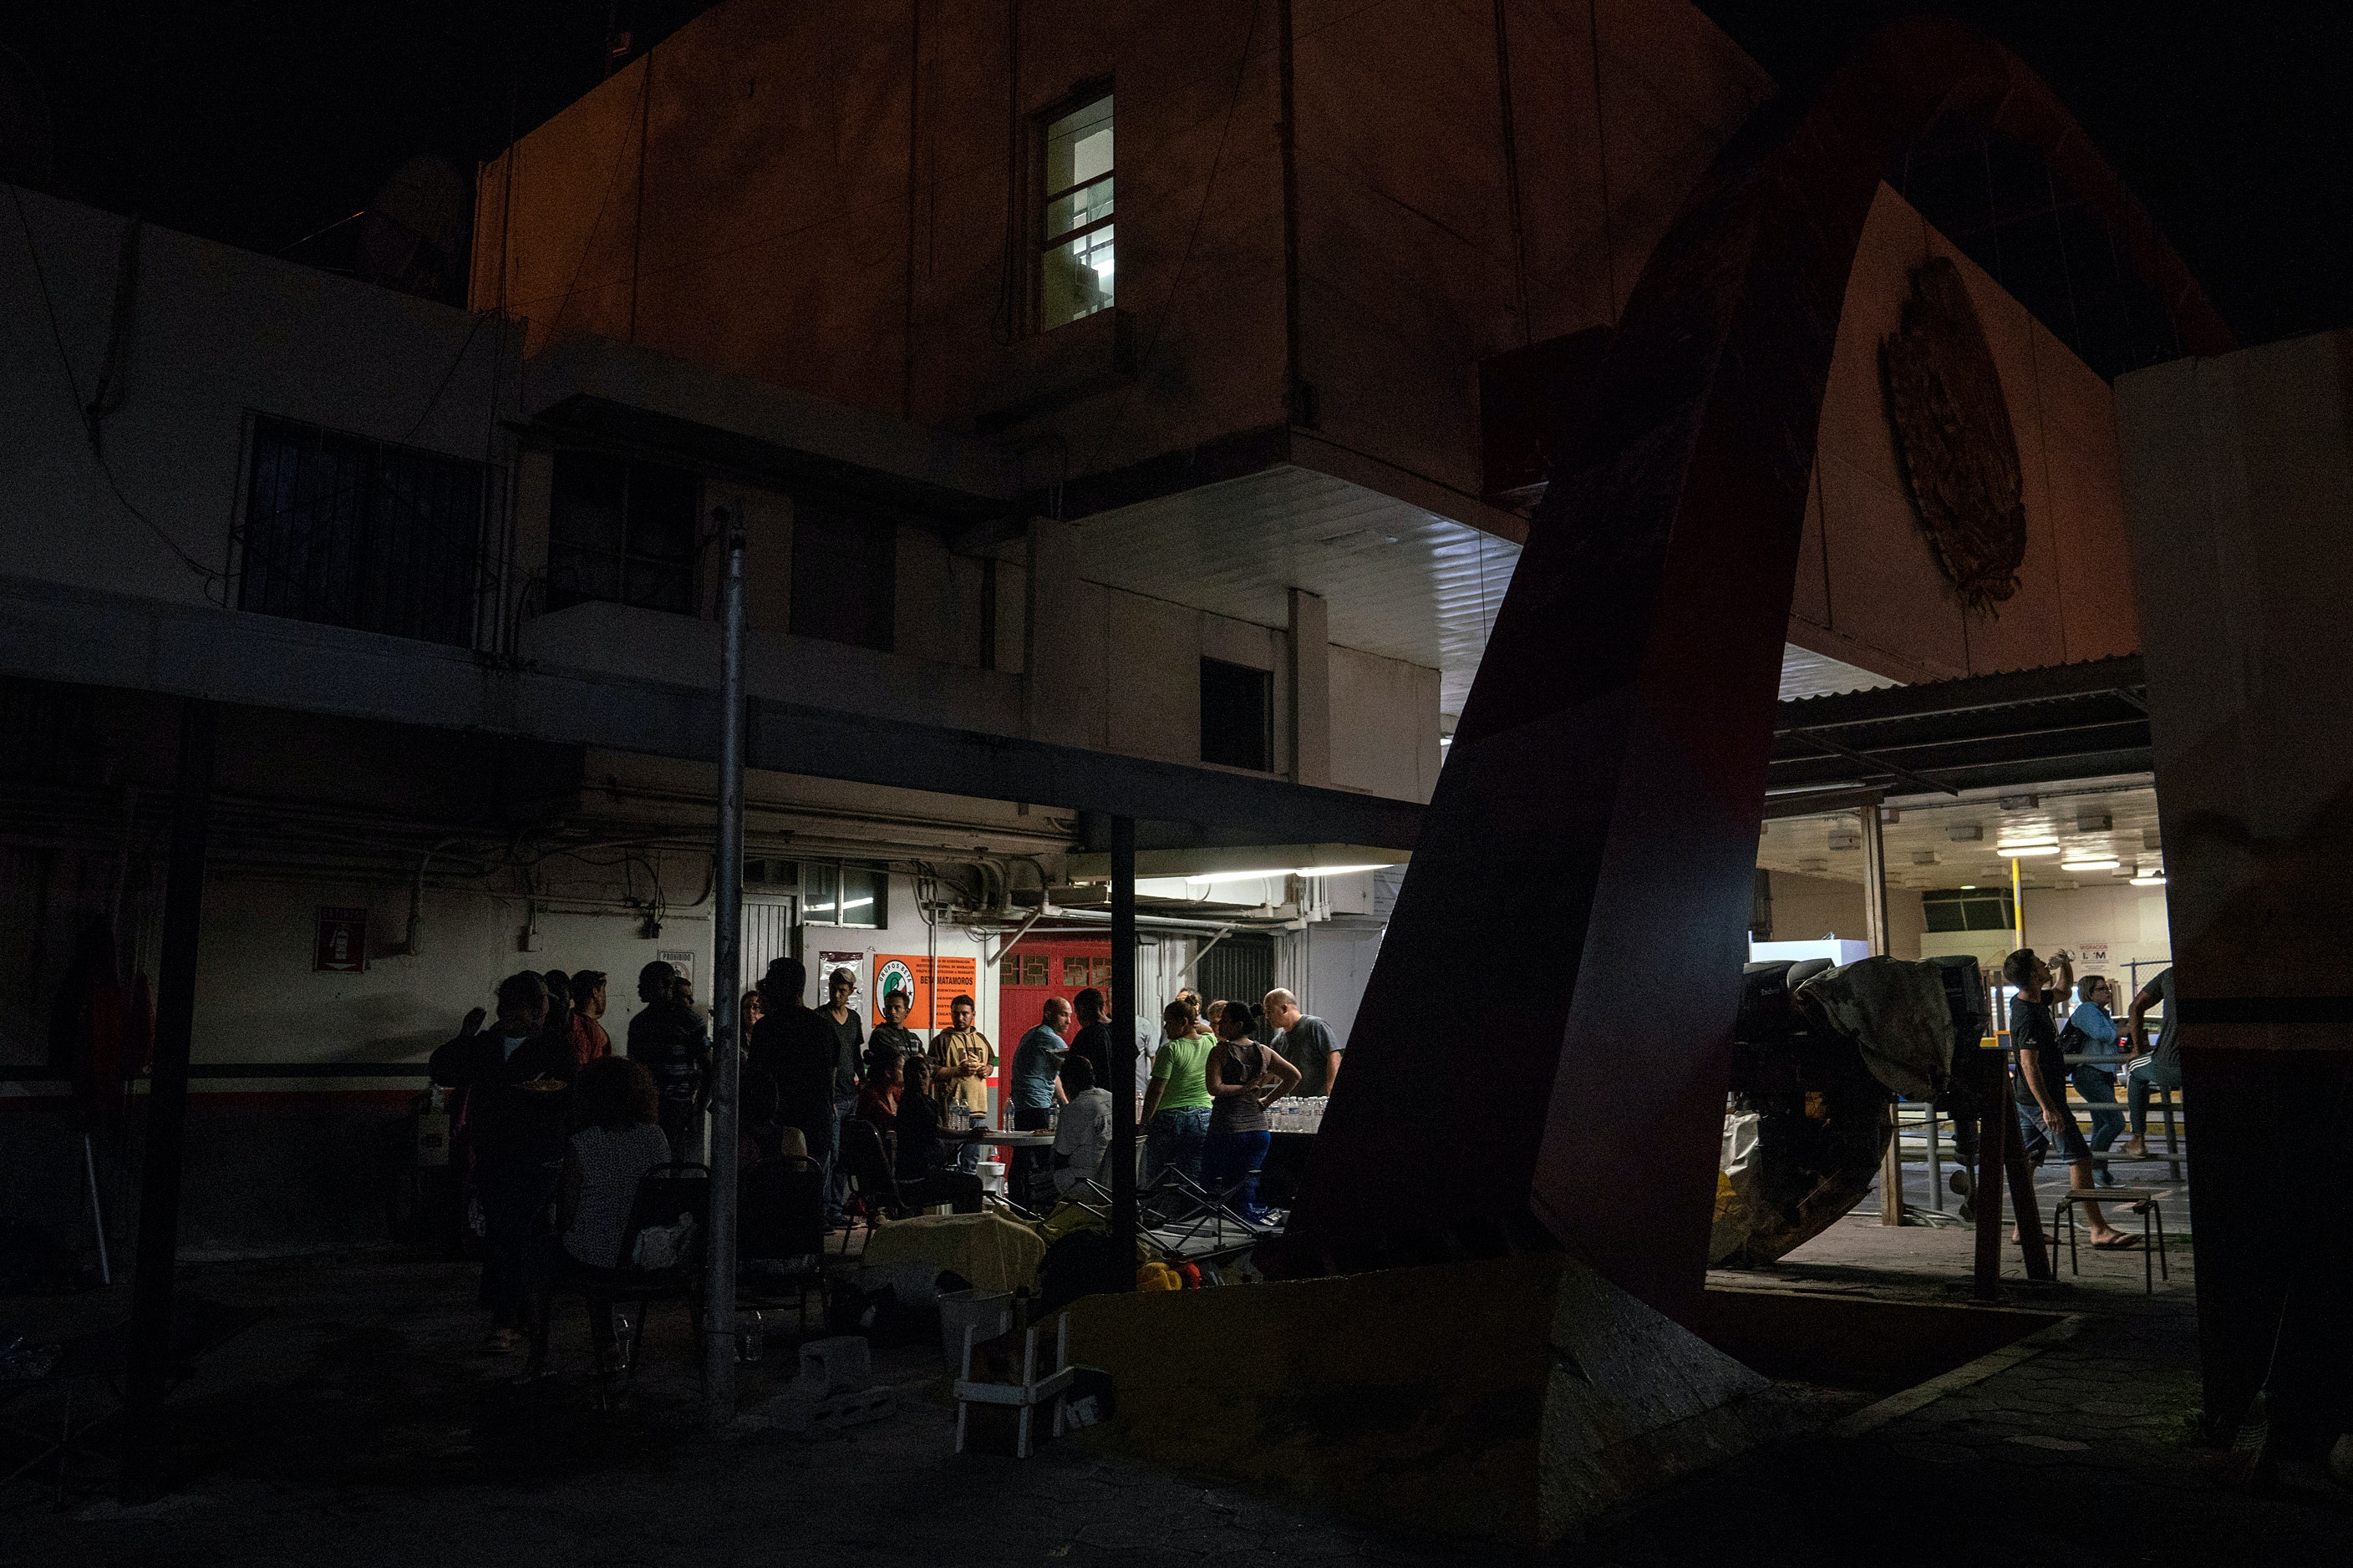 Asylum seekers gather to eat the food brought to them by volunteers near the Gateway International Bridge in Matamoros, Tamaulipas on Nov. 5, 2018. Photo: Verónica G. Cárdenas for The Intercept